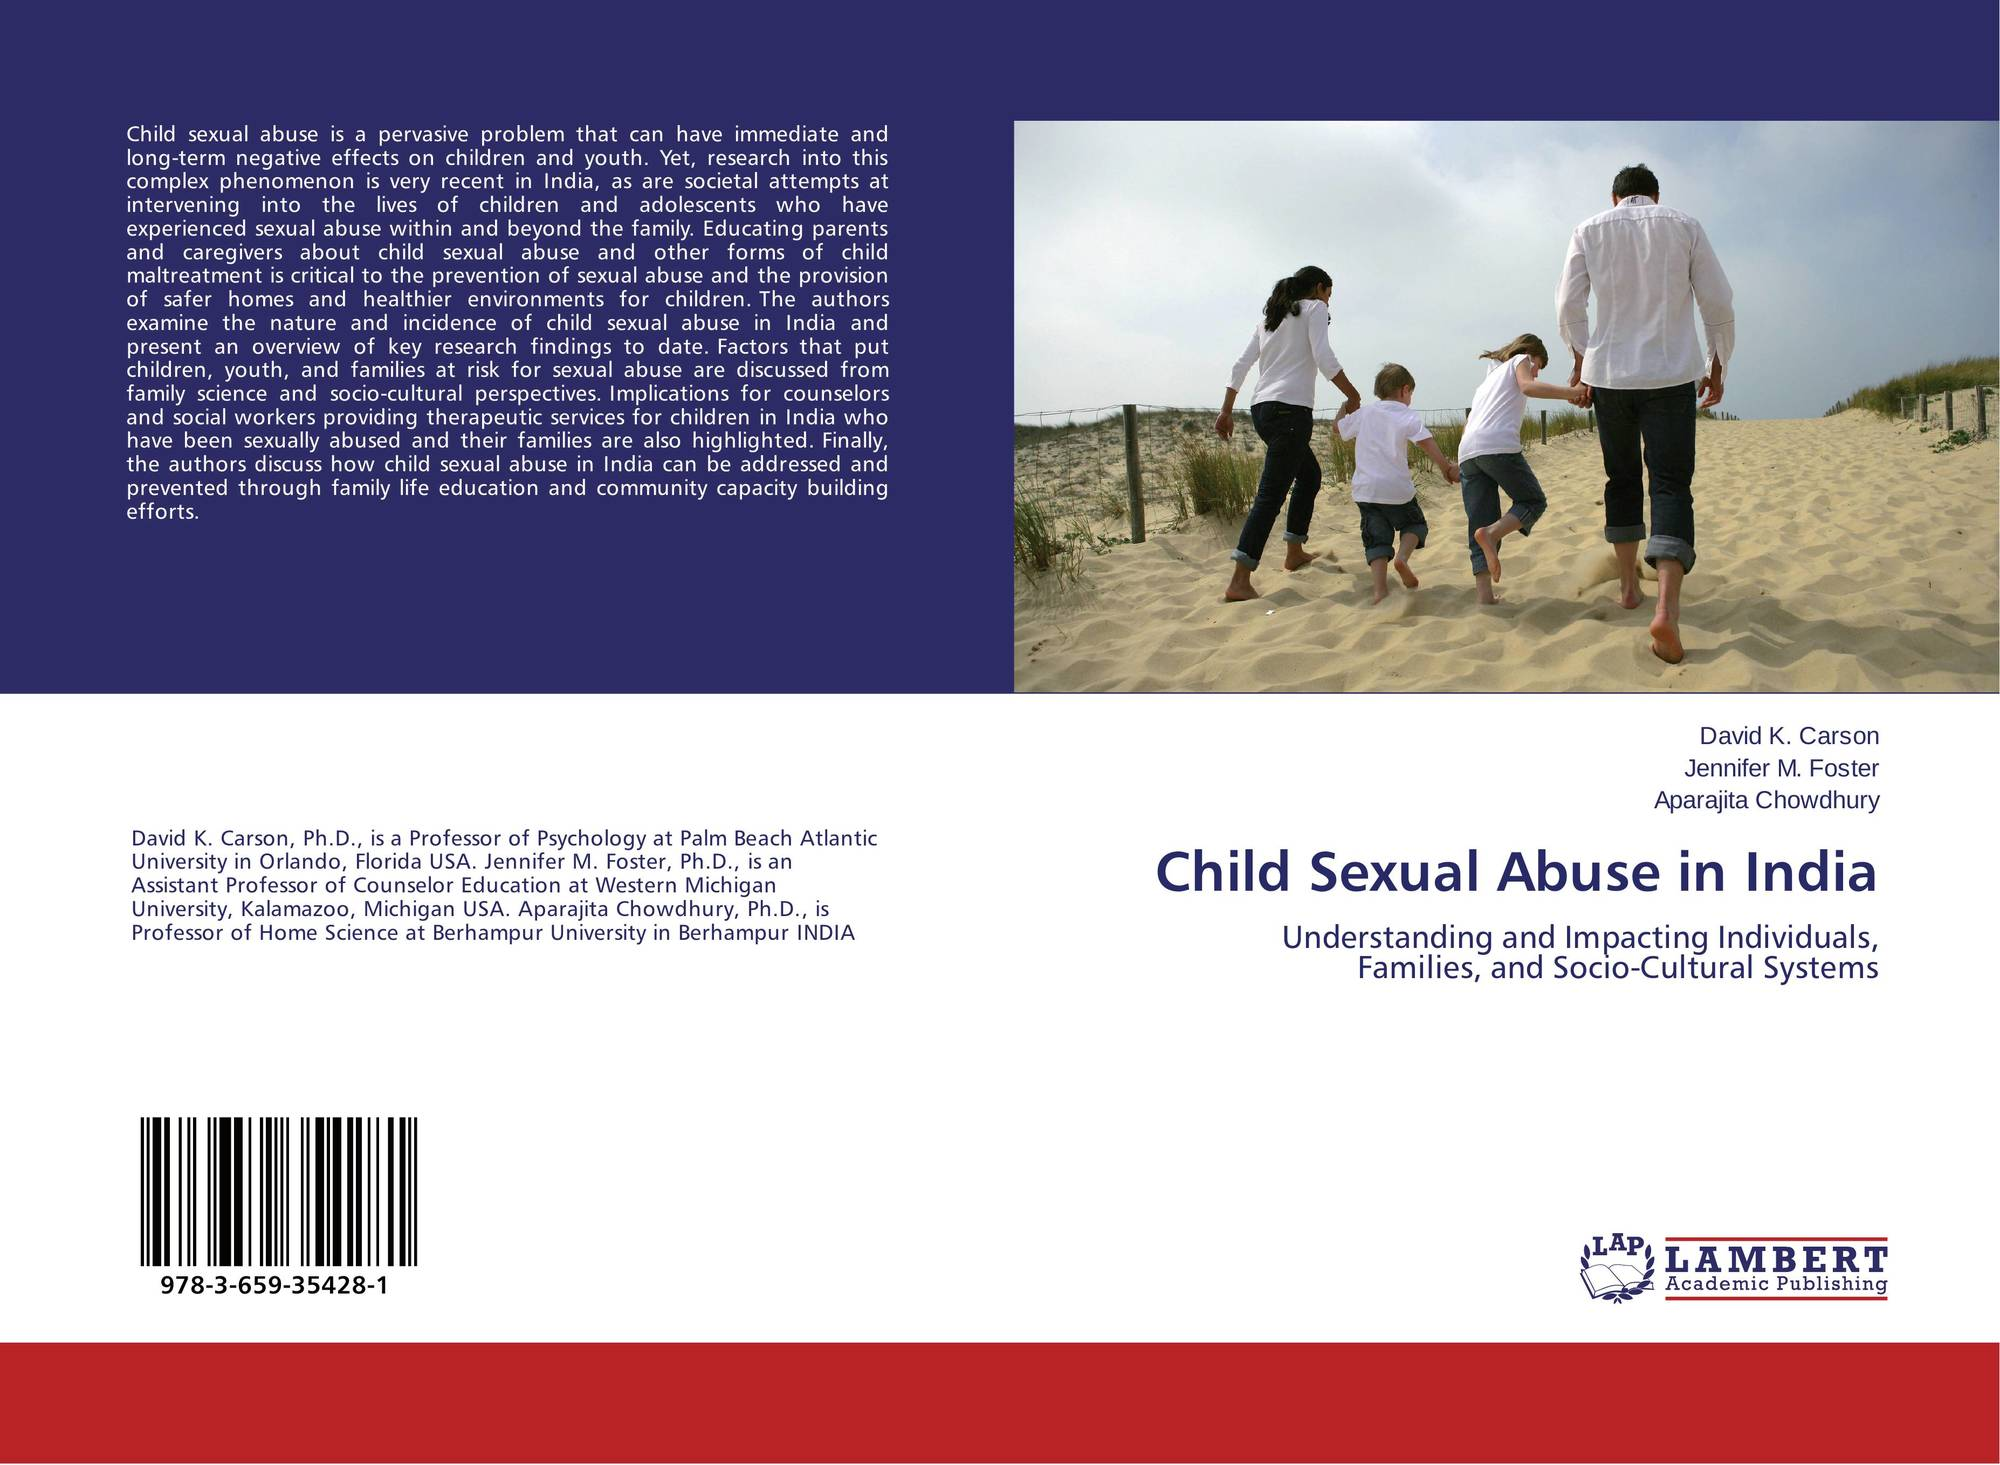 the problem of child abuse in the united states Publications and resources related to state and federal civil laws on child abuse and neglect, child welfare, and adoption federal laws provide standards and guidelines however, these issues are primarily governed by state laws and regulations in the united states.